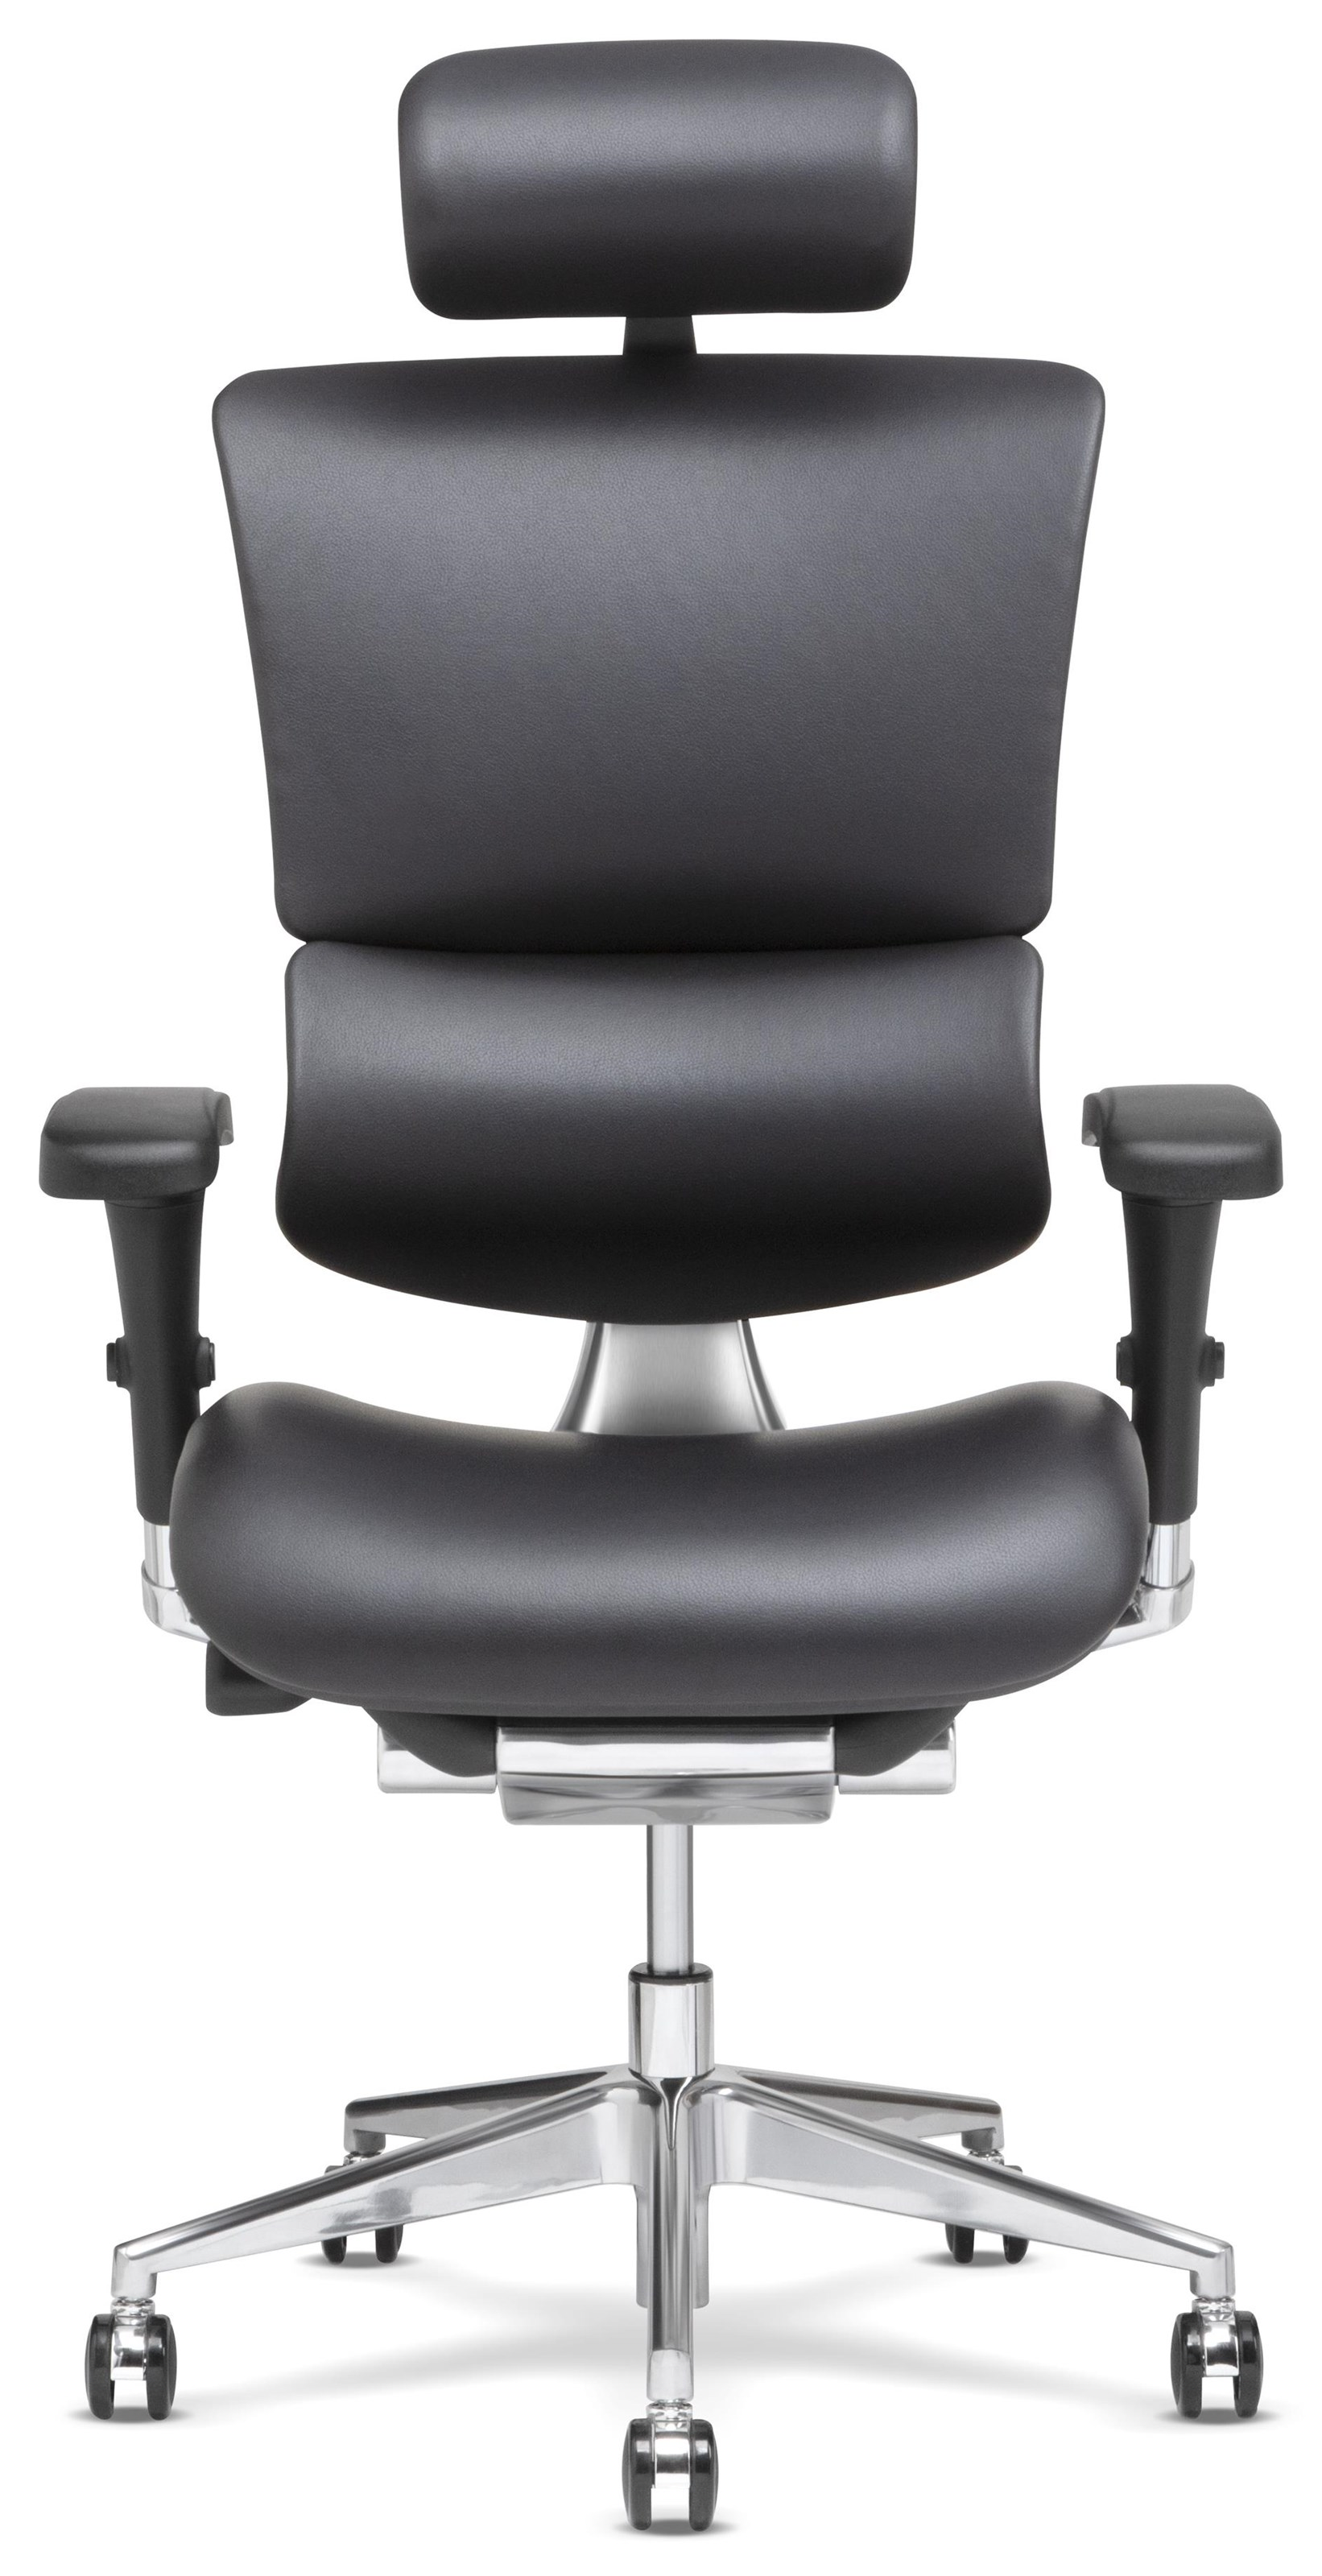 X4 X-HMT® Heat and Massage Chair by X-Chair at HomeWorld Furniture